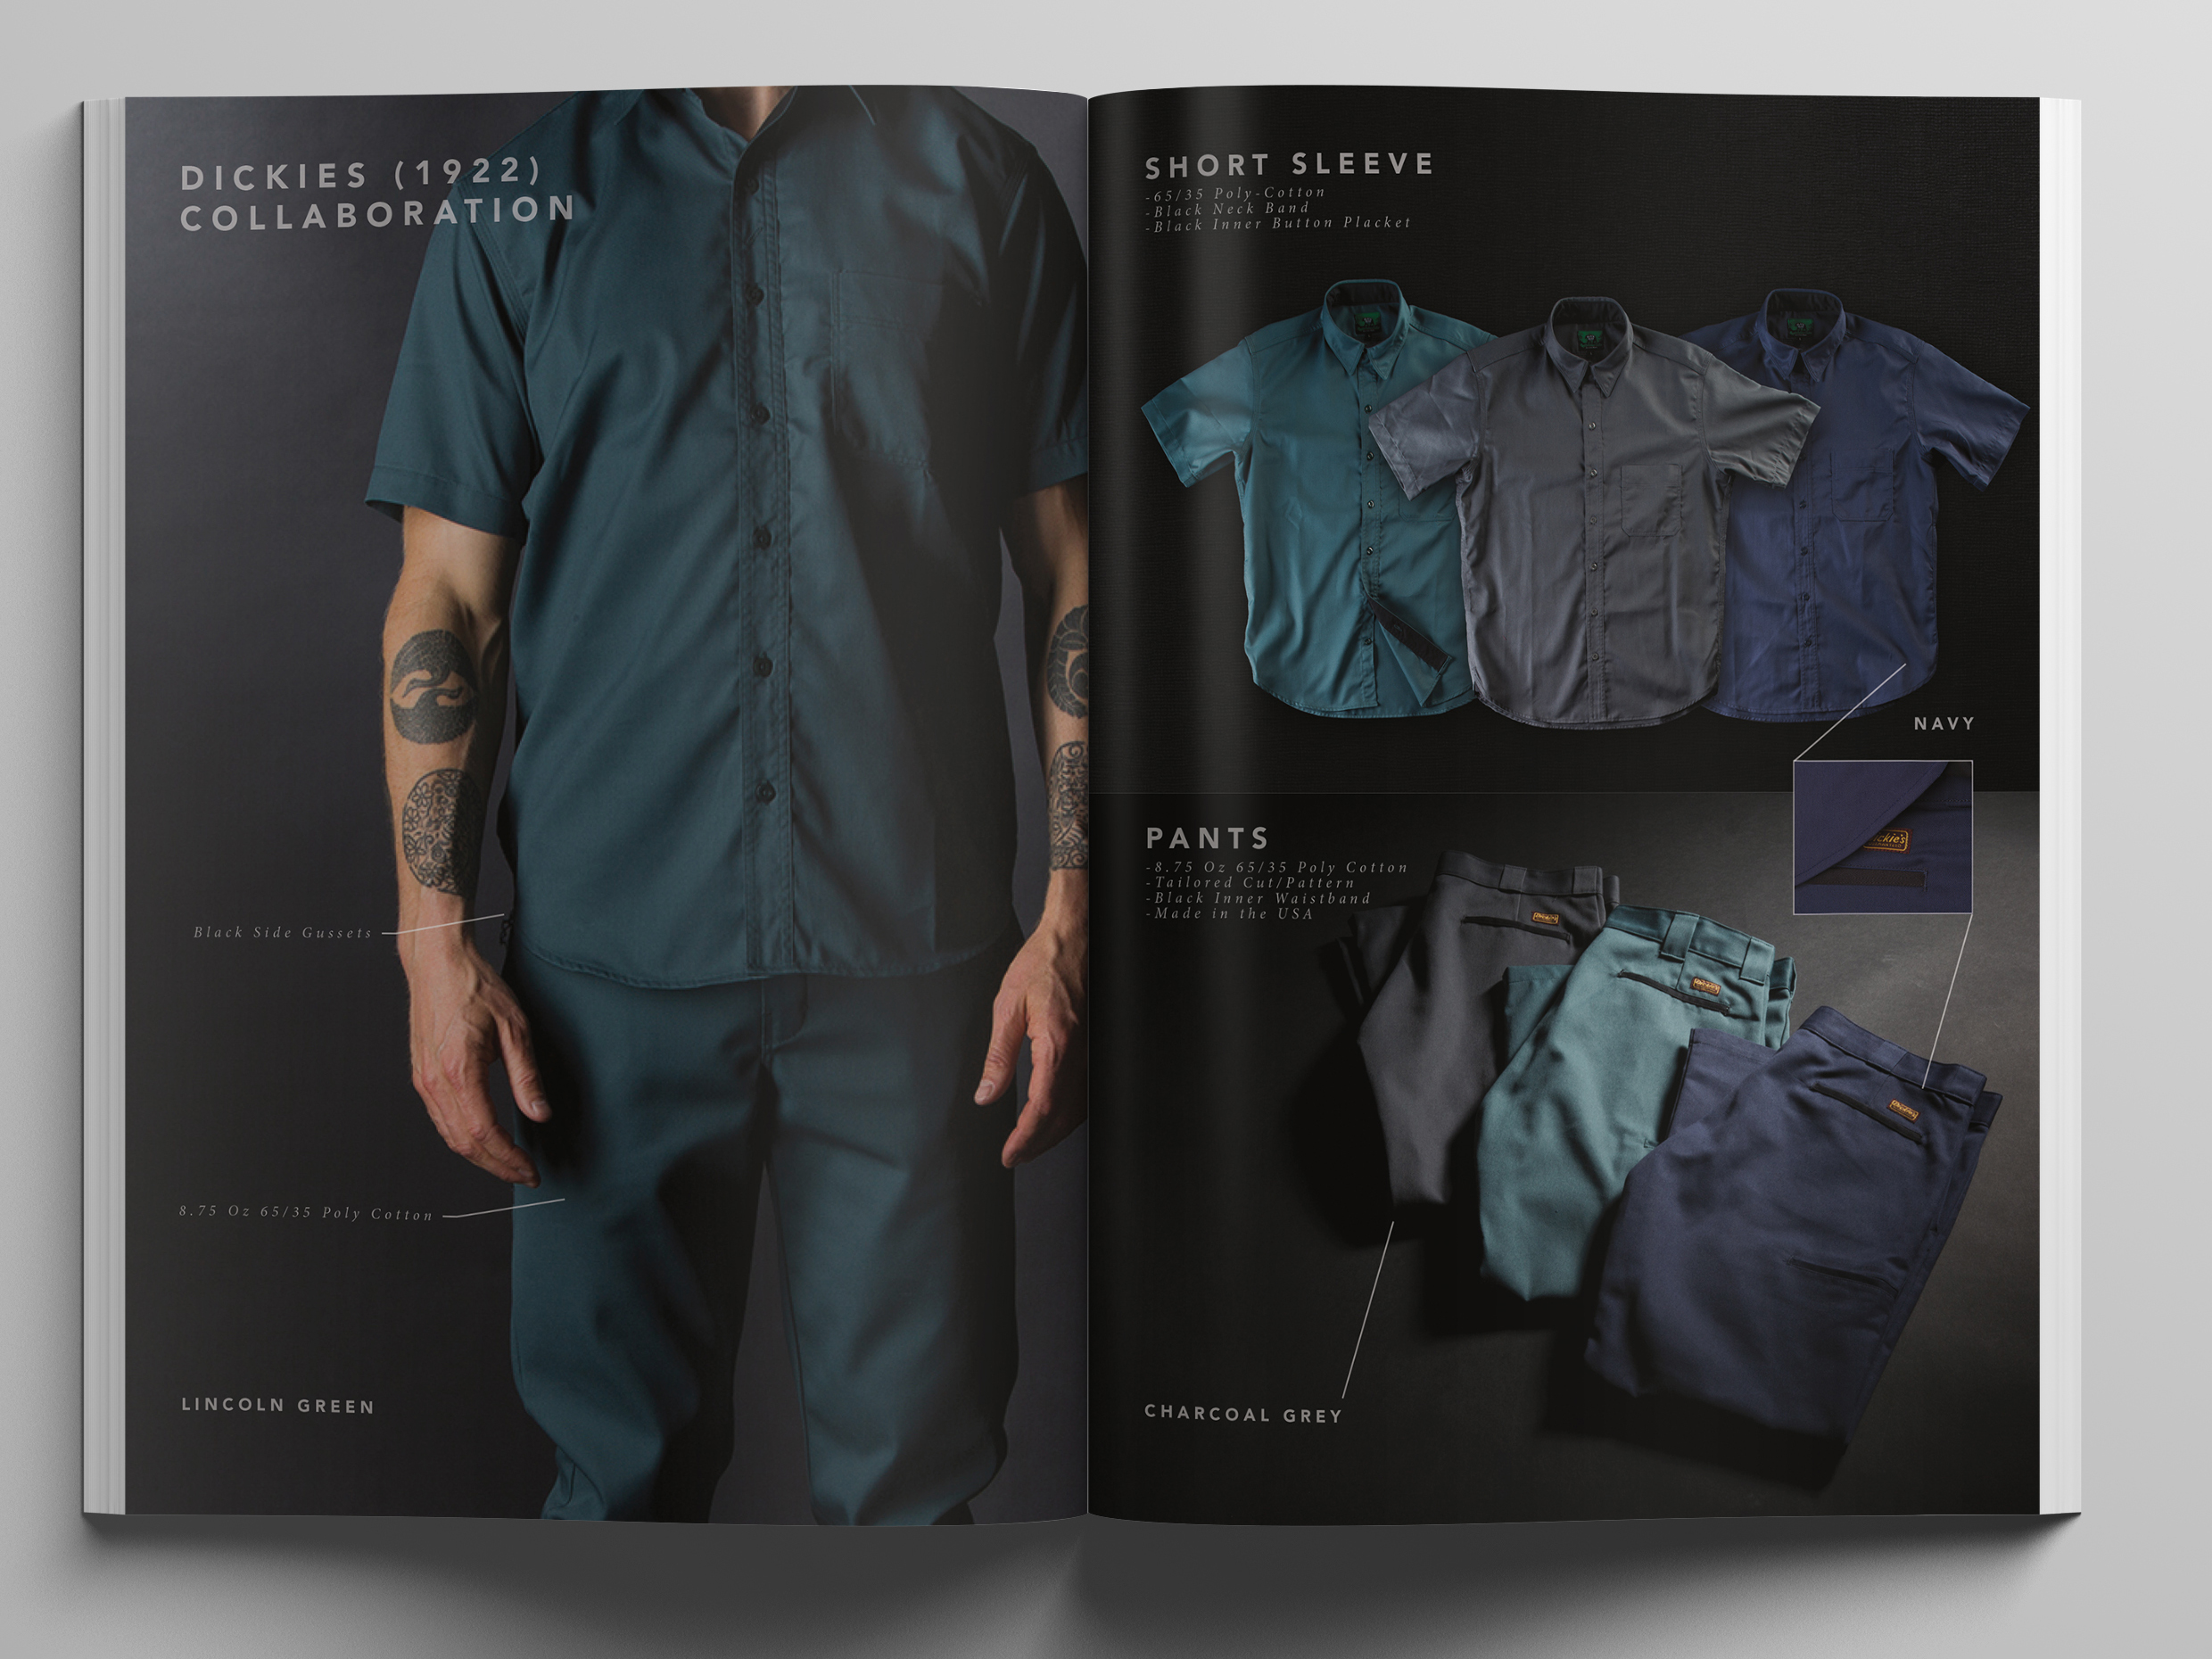 Black Bear Brand Collaboration with Dickies